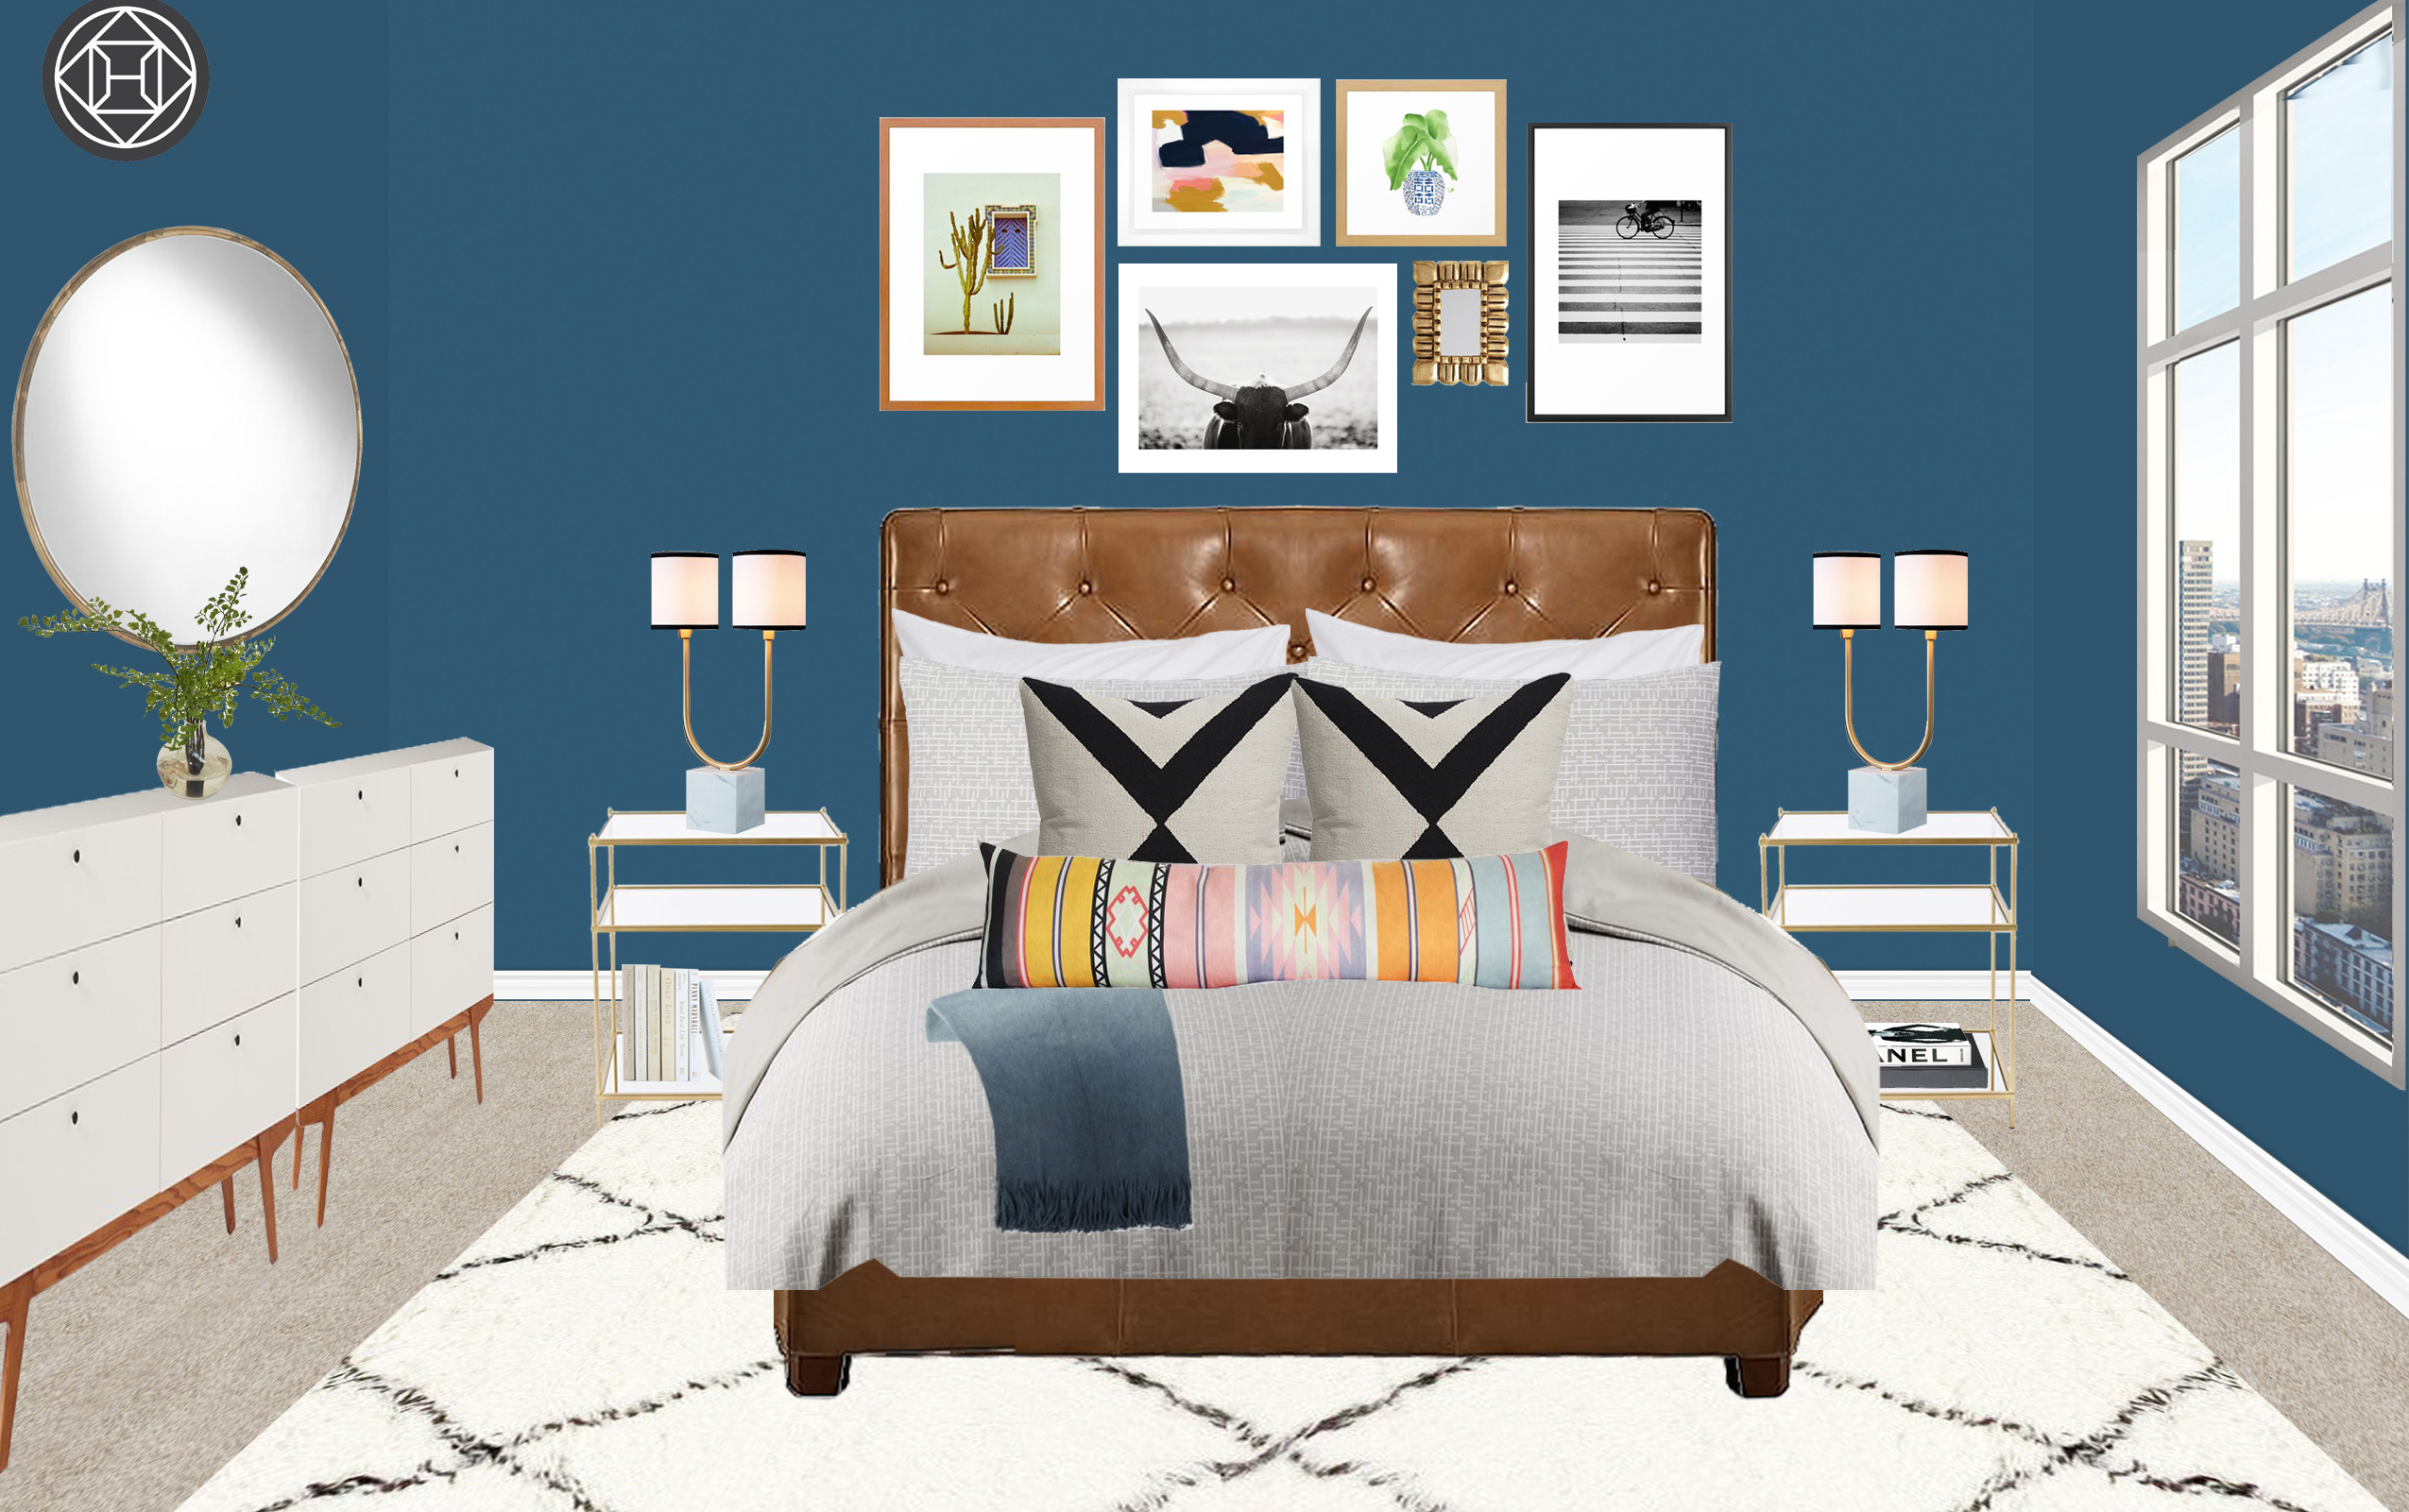 Room Recipe: A Modern U0026 Eclectic Bedroom Design